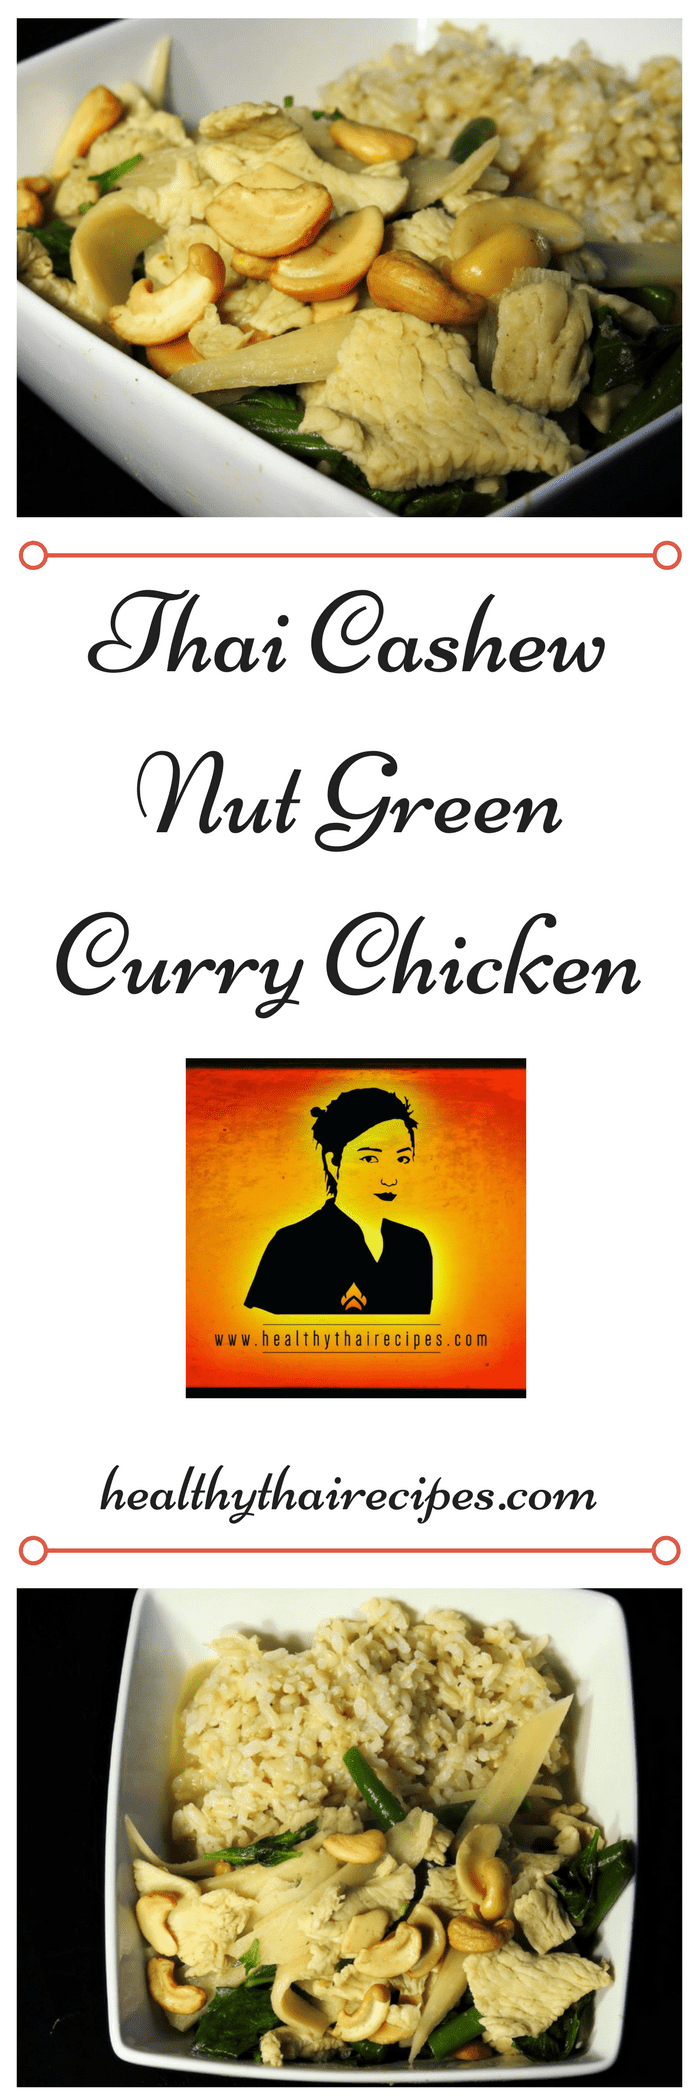 Thai Cashew Green Curry is a rich, spicy way to enjoy this wonderful nut.